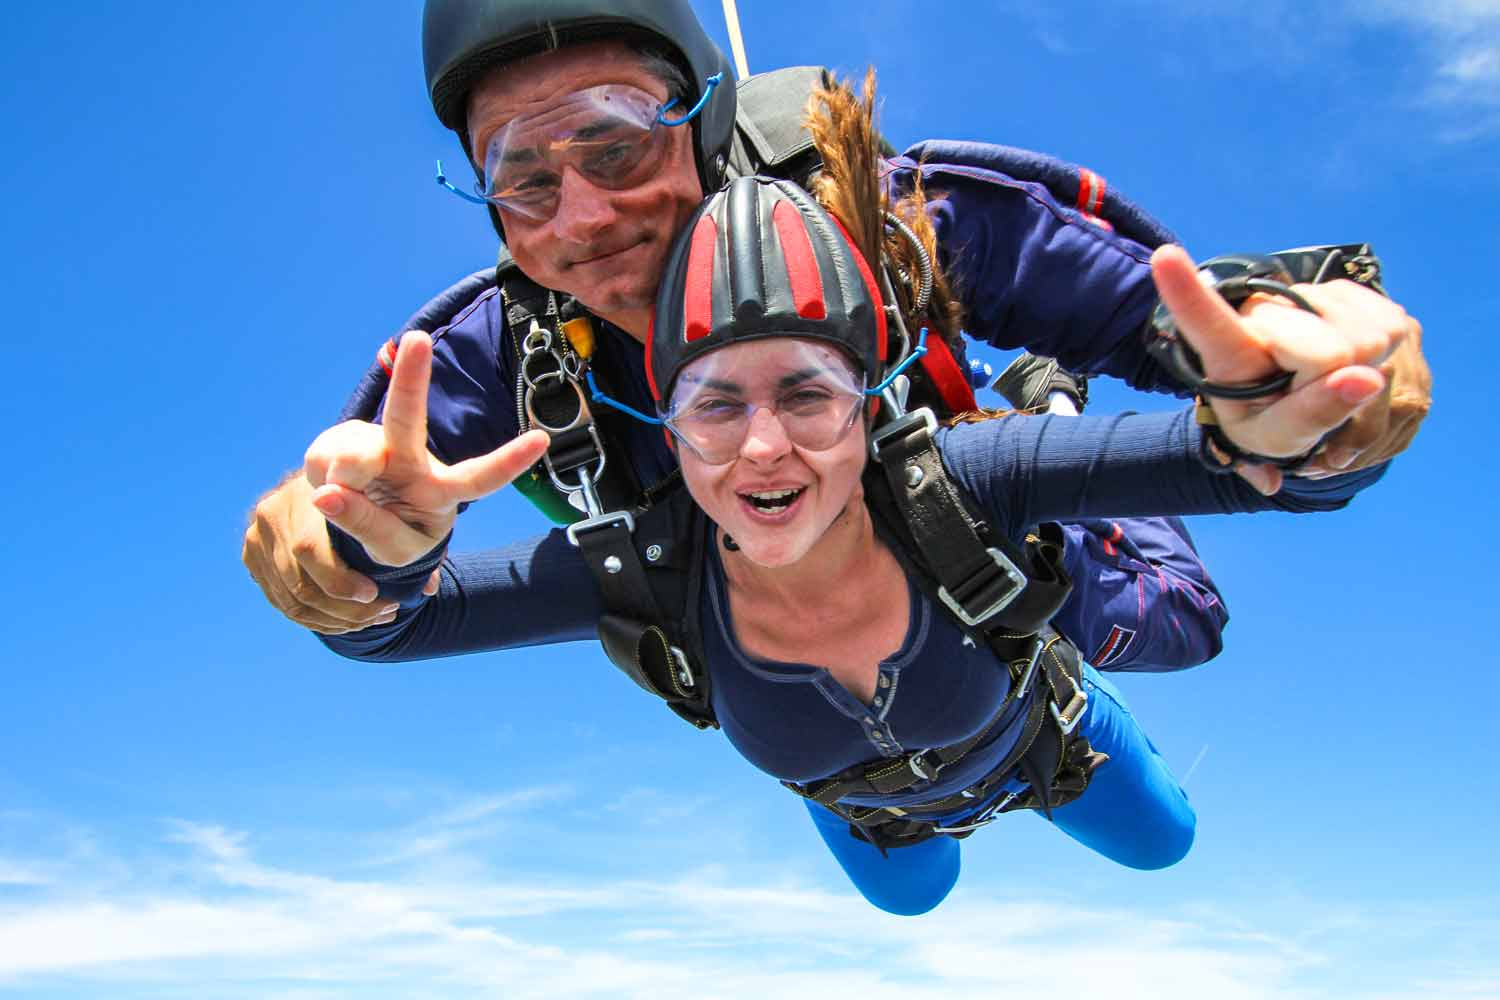 Factors to Consider While Choosing a Skydiving Club